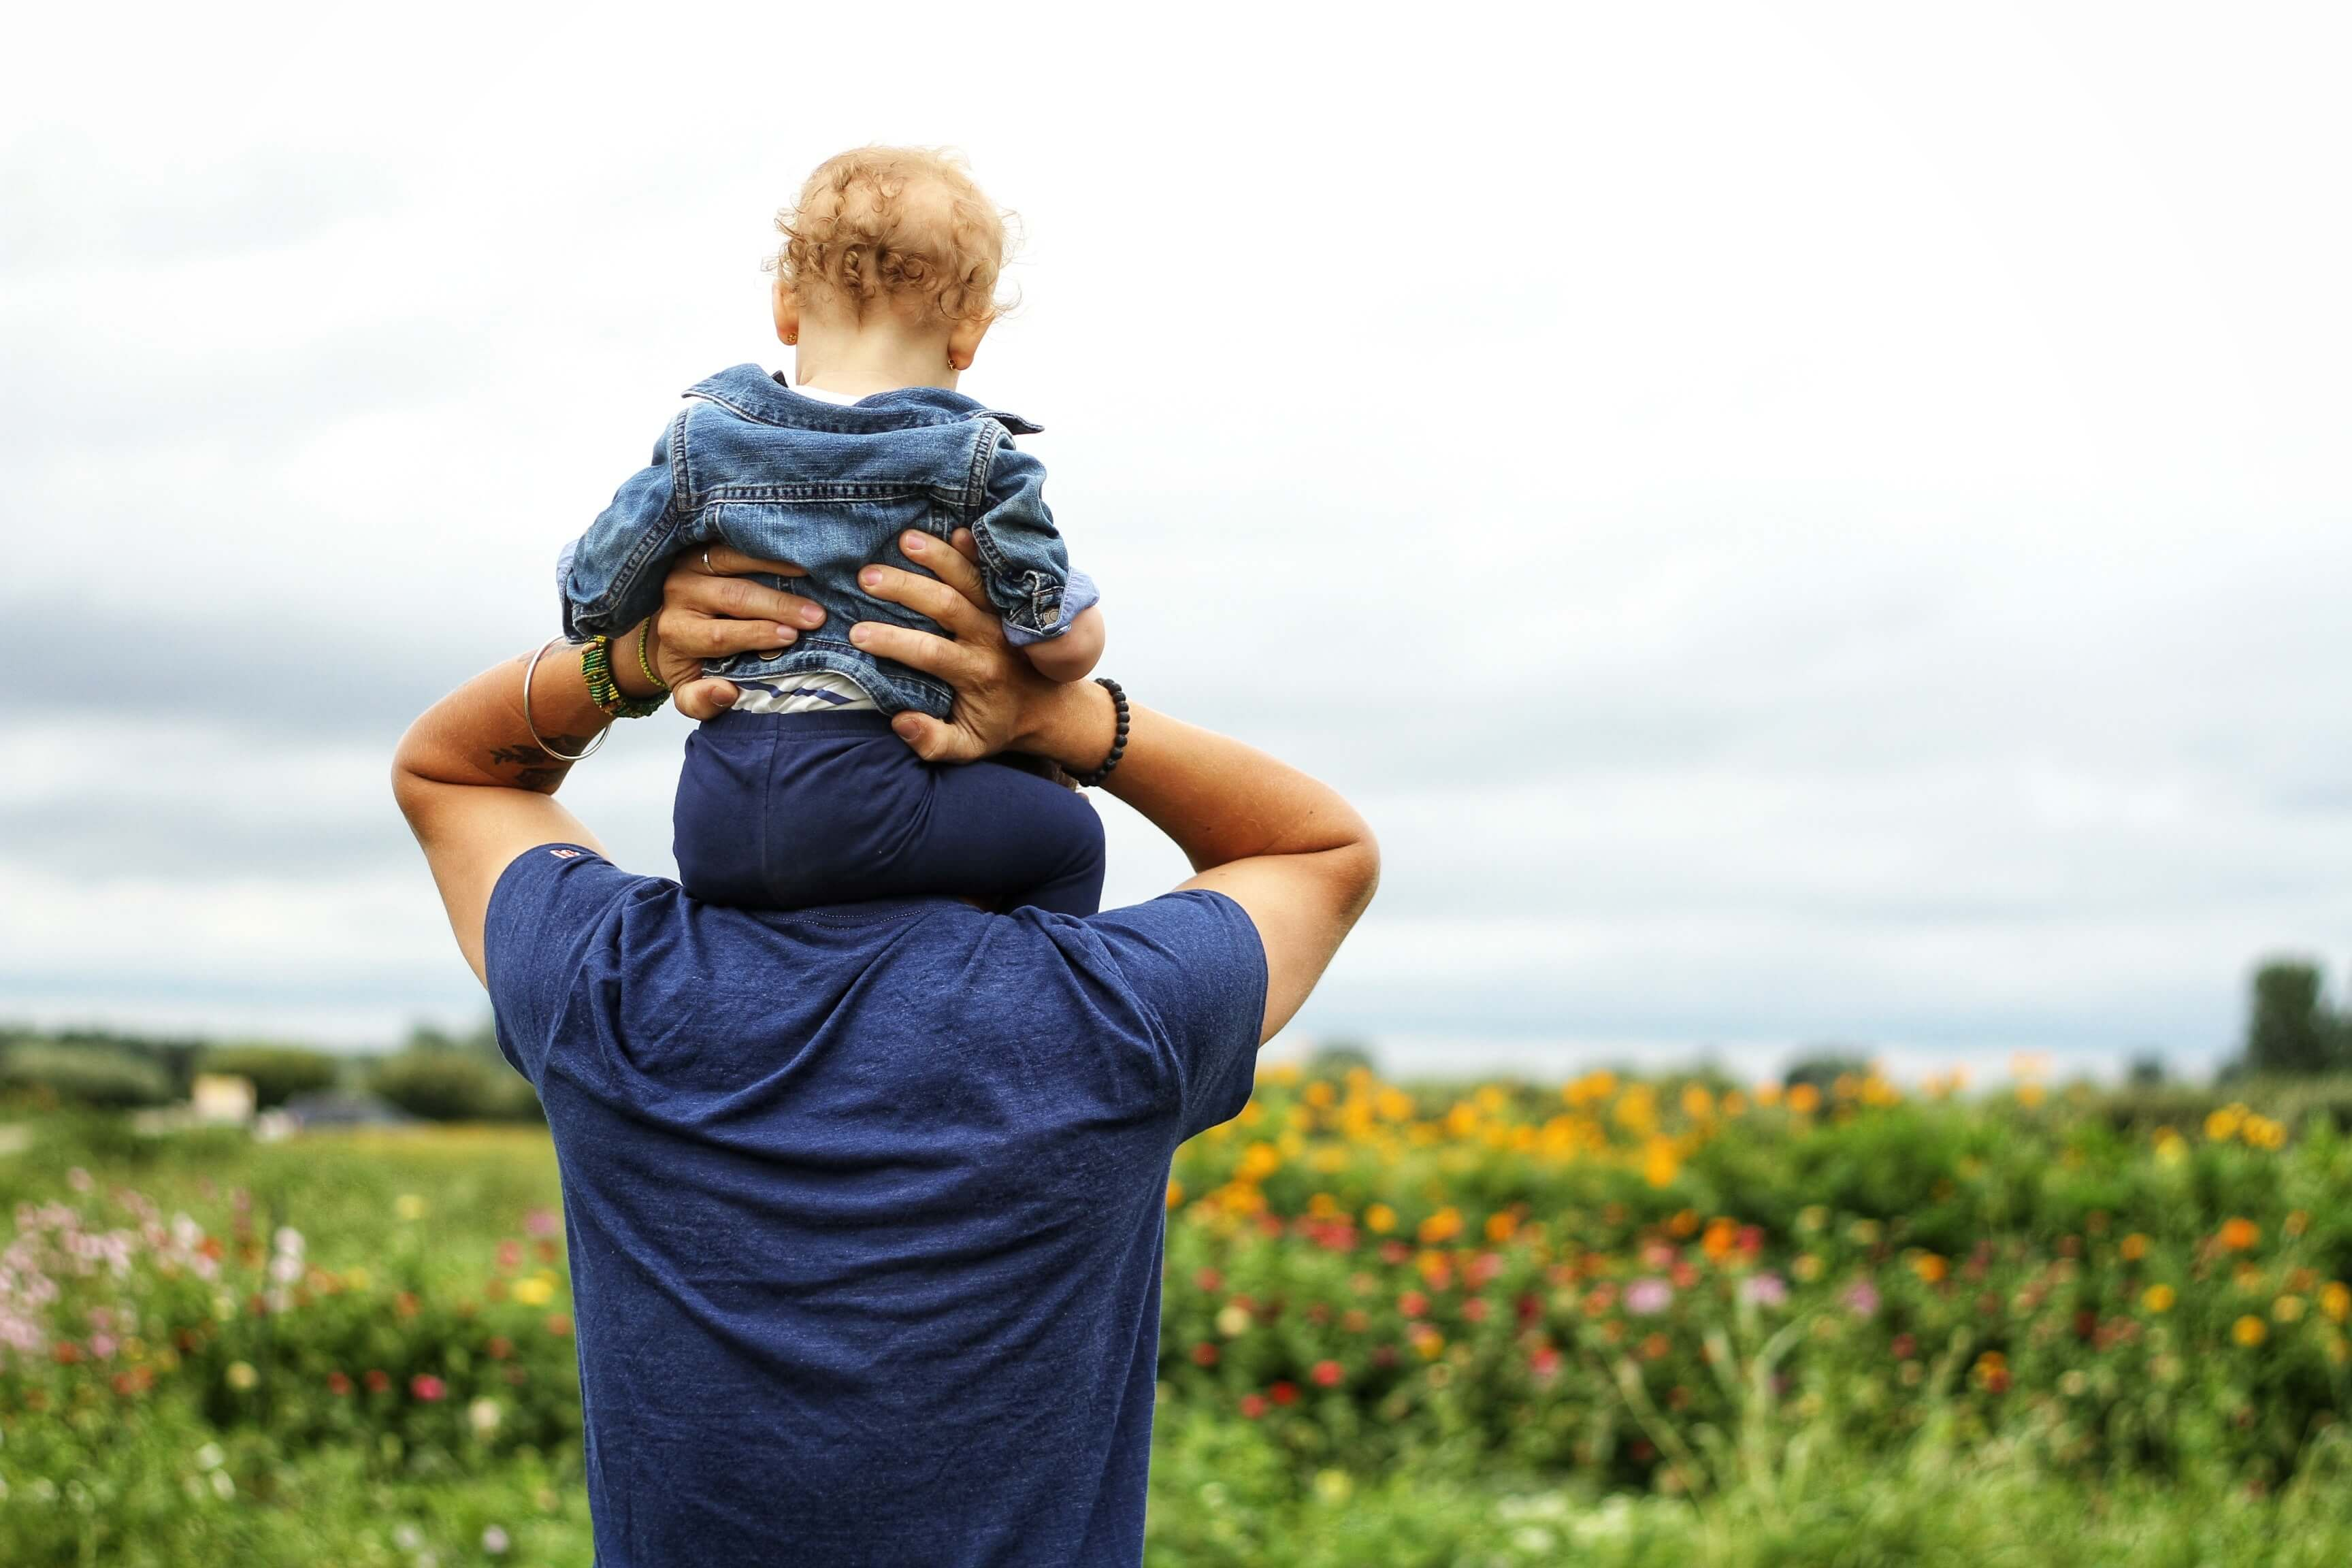 Man and son in a meadow. It's important to support child abuse prevention awareness.